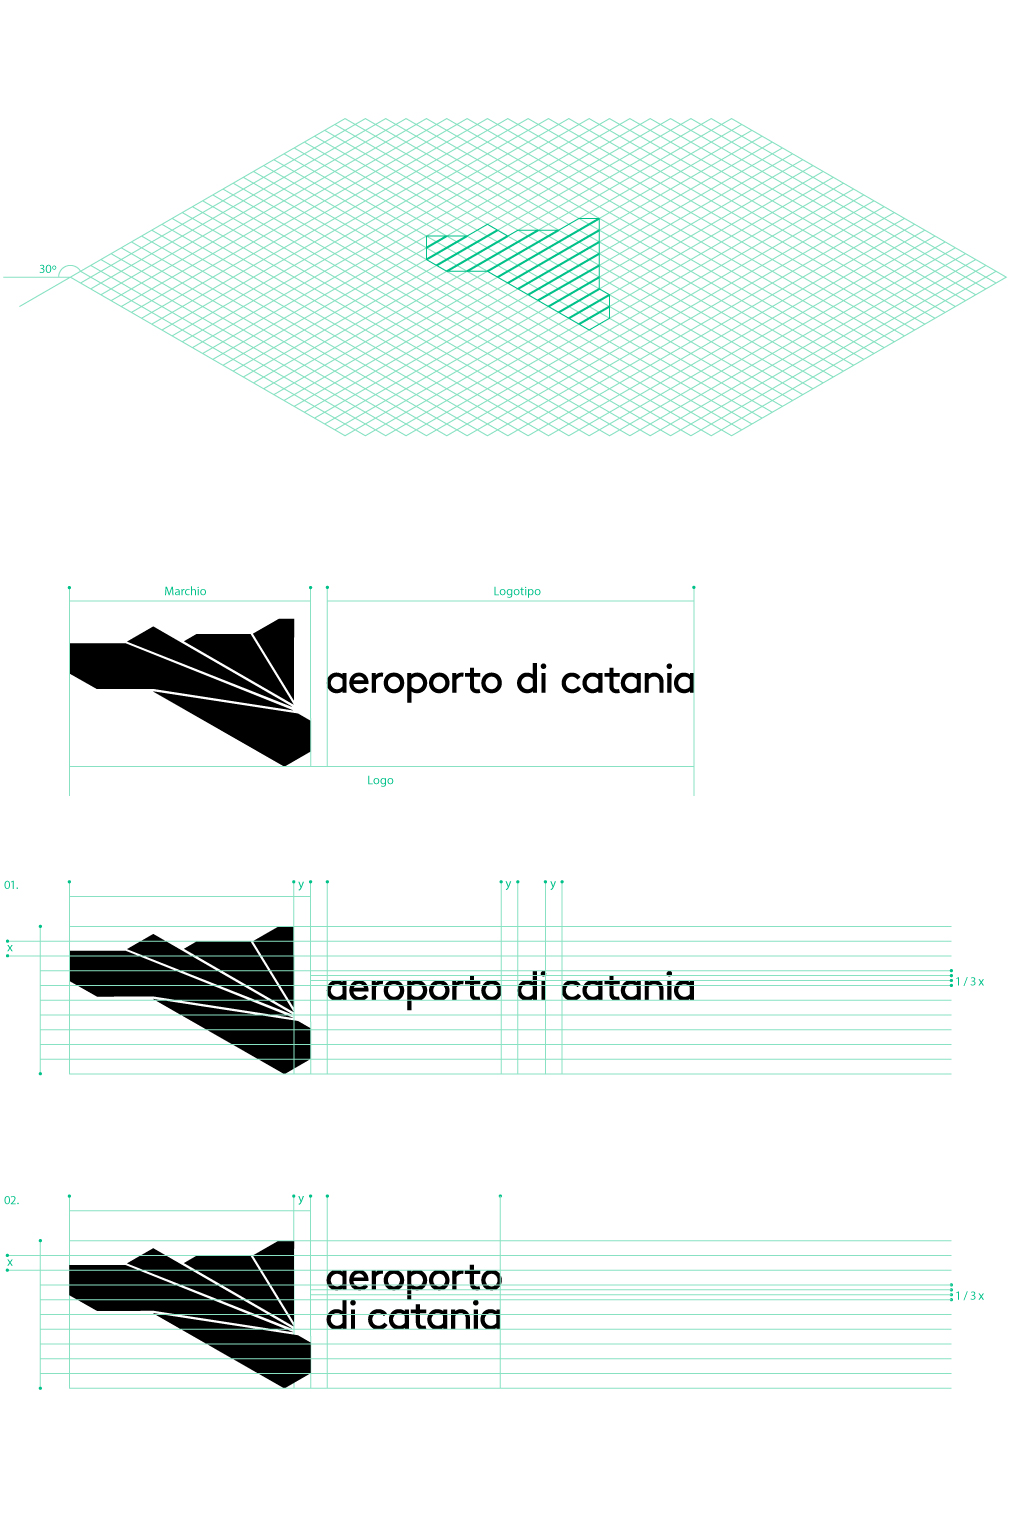 The logo is inspired by the shape of Catania as a travel destination. The angles are used in the pictograms and other brand applications.